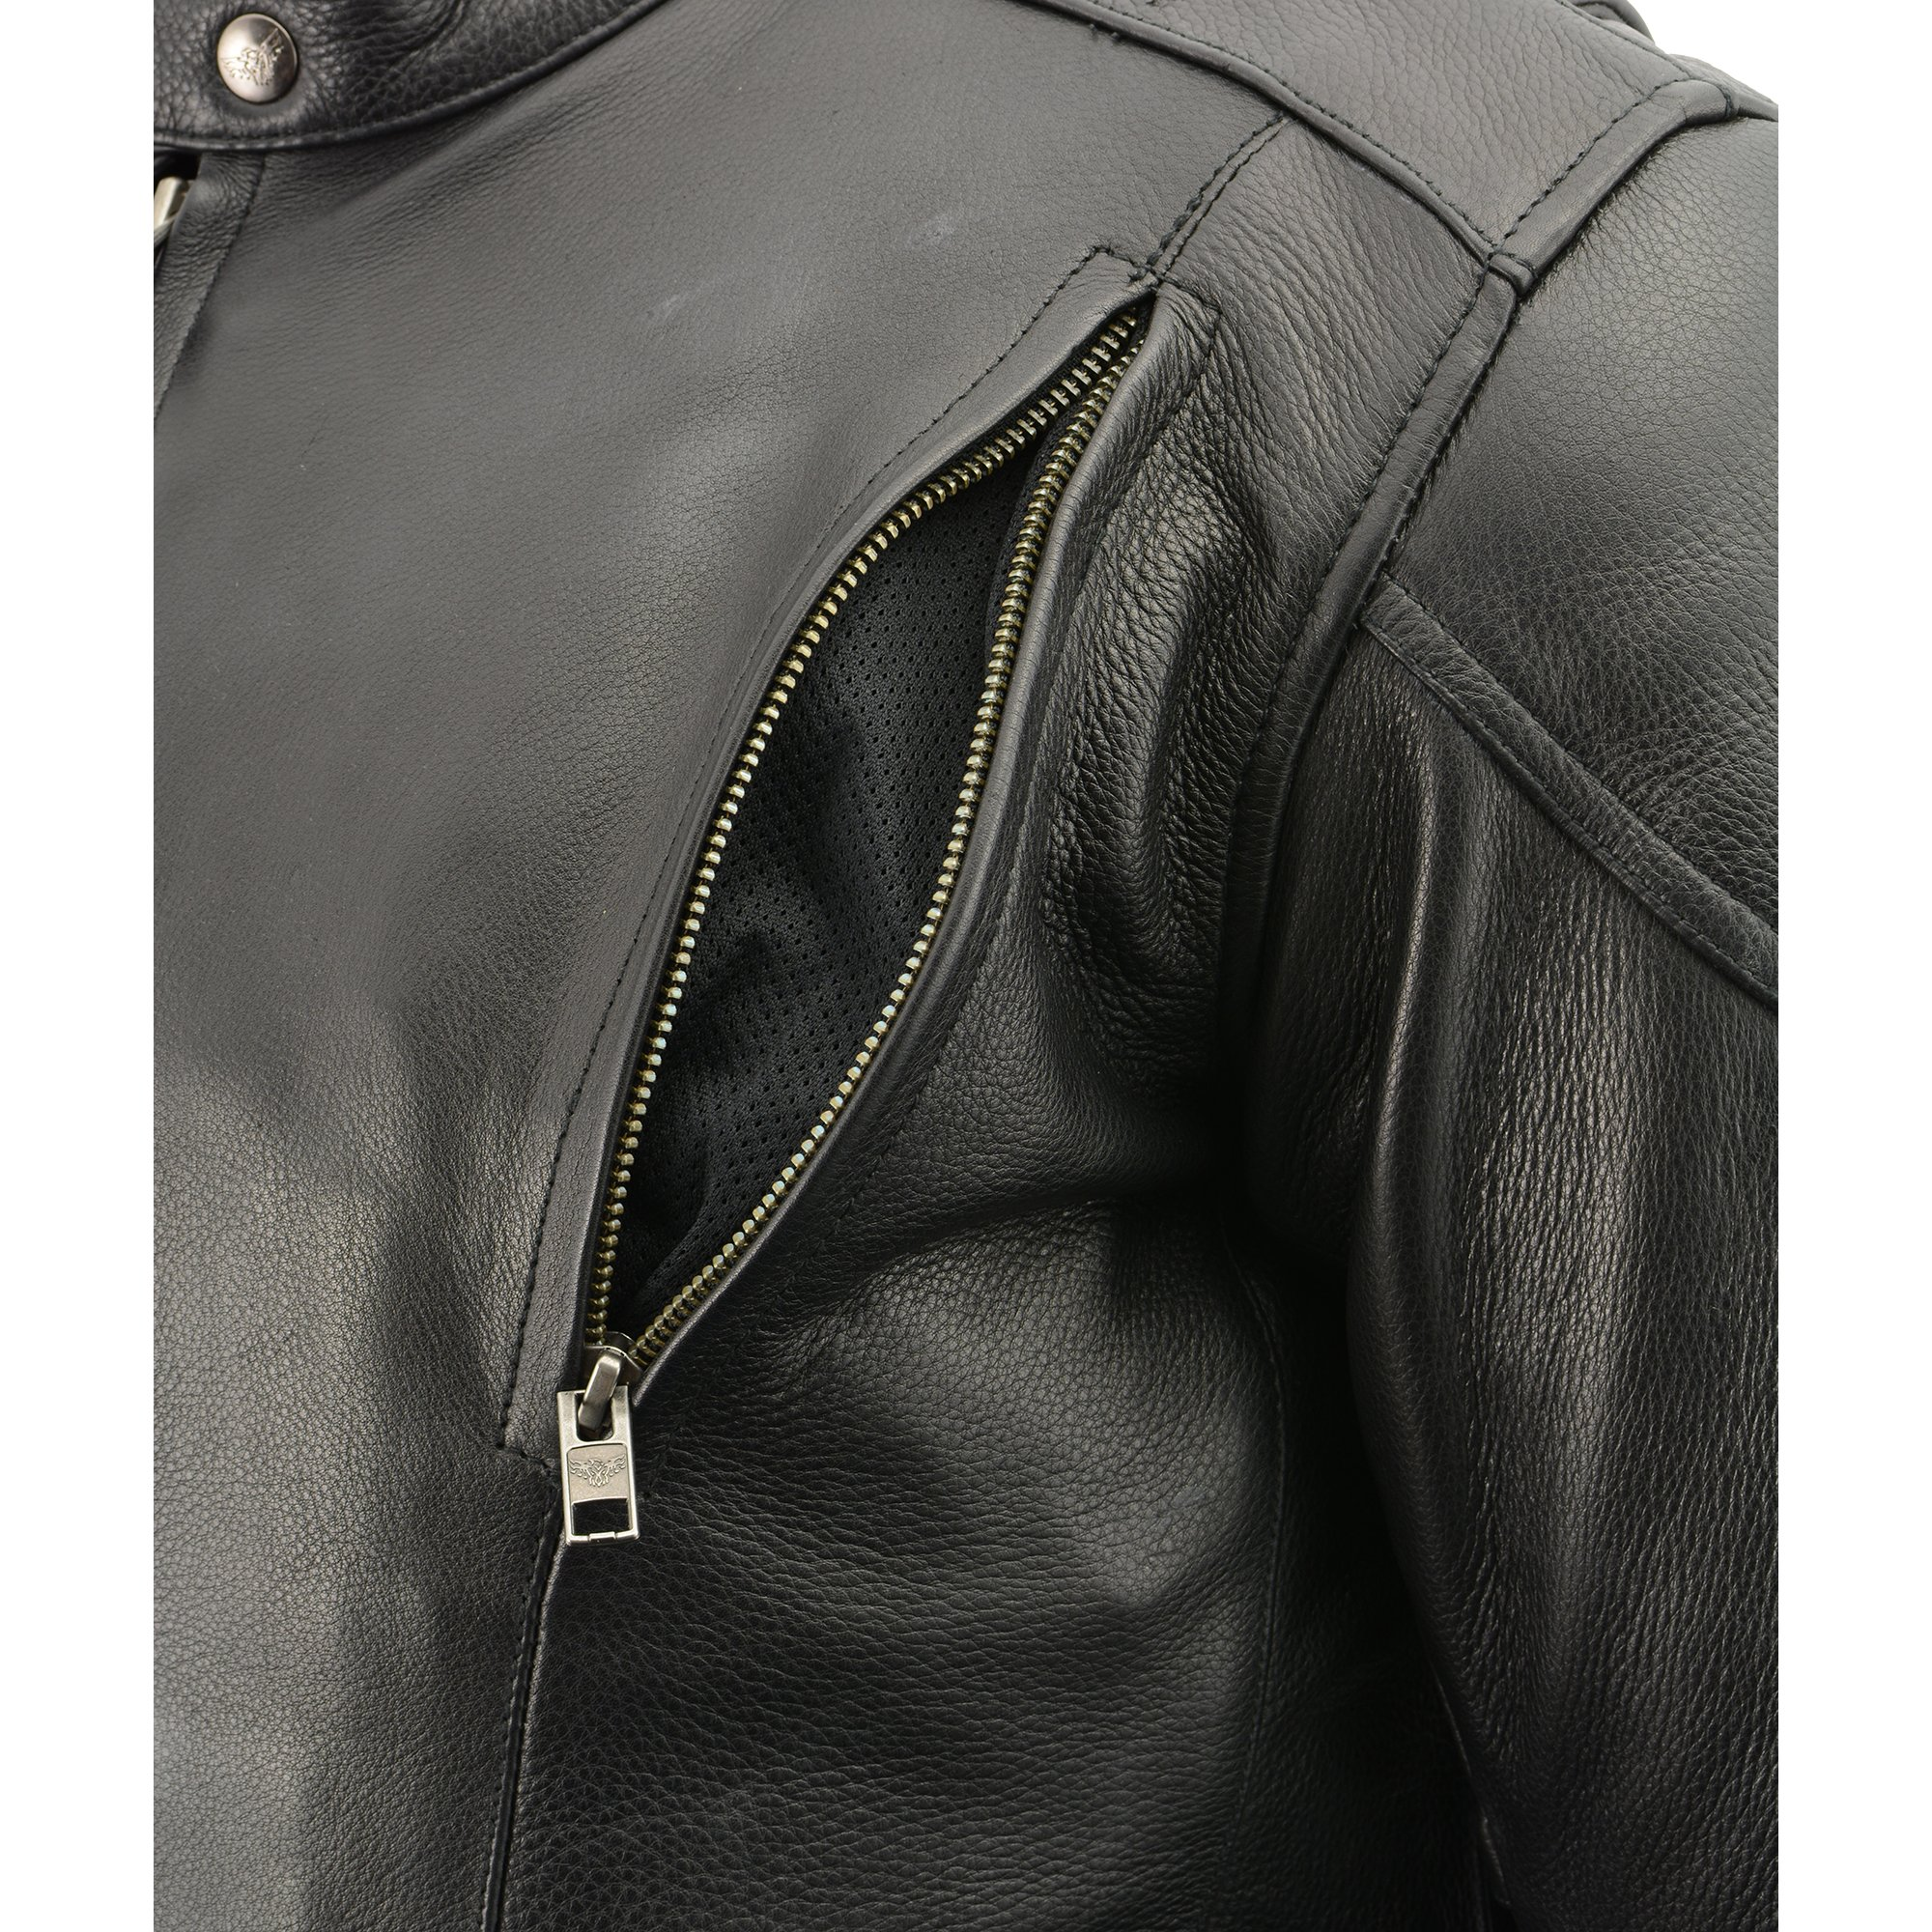 Milwaukee Leather Men's Side Lace Vented Scooter Jacket (Black, 5X-LargeTall) by Milwaukee Leather (Image #8)